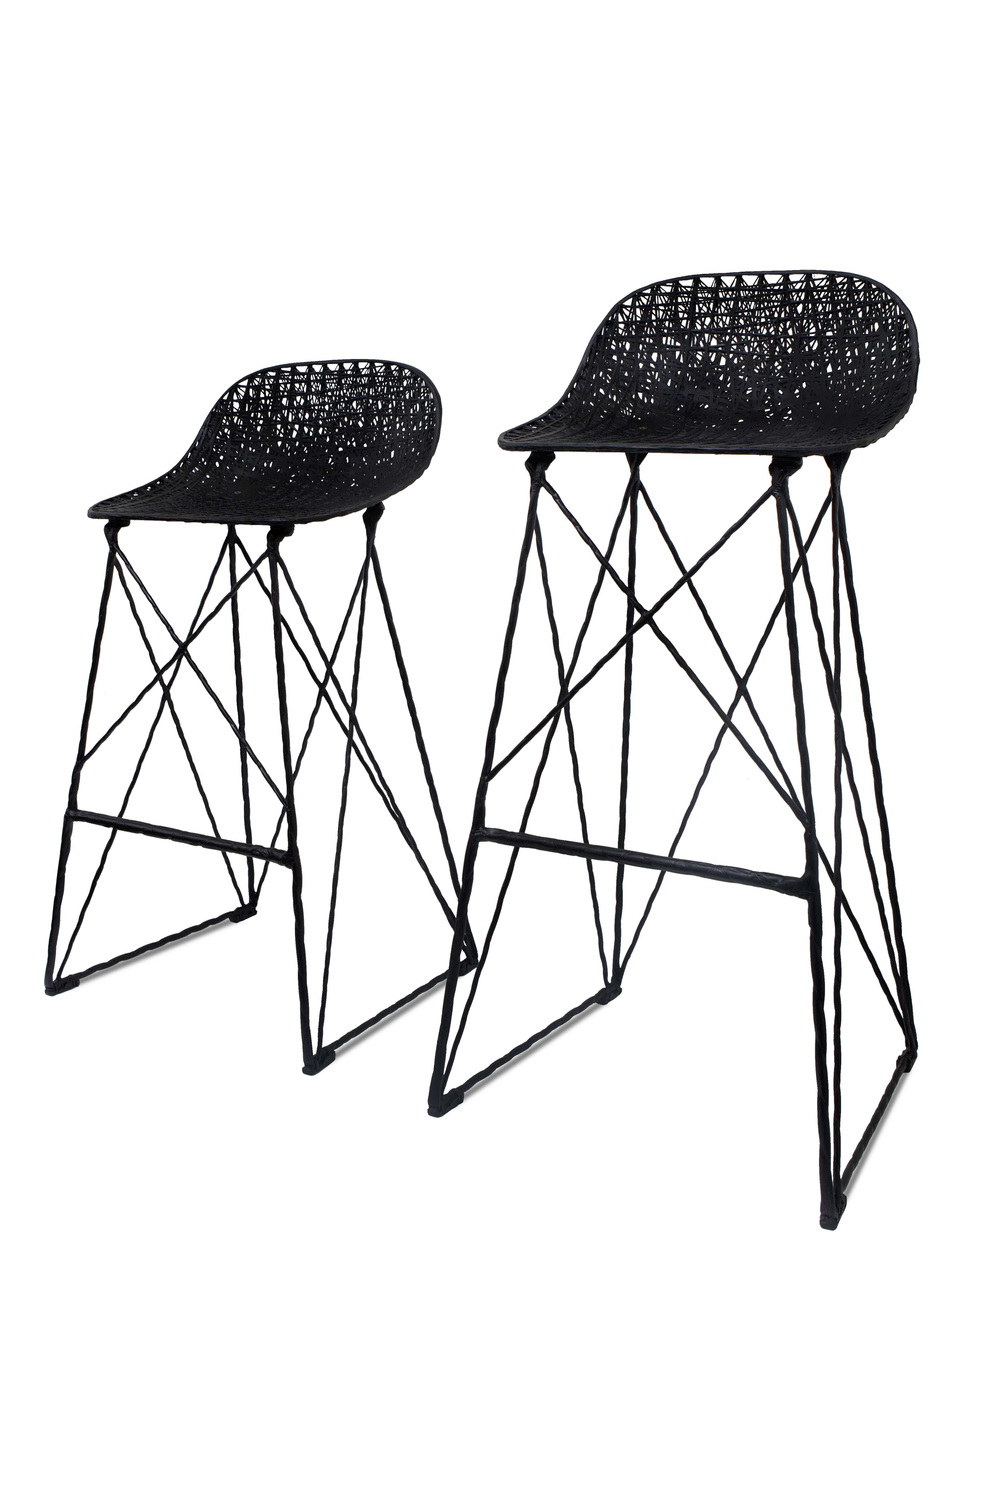 carbon_bar_stool_and_carbon_bar_stool_low_by_bertjan_pot_marcel_wanders_for_moooi